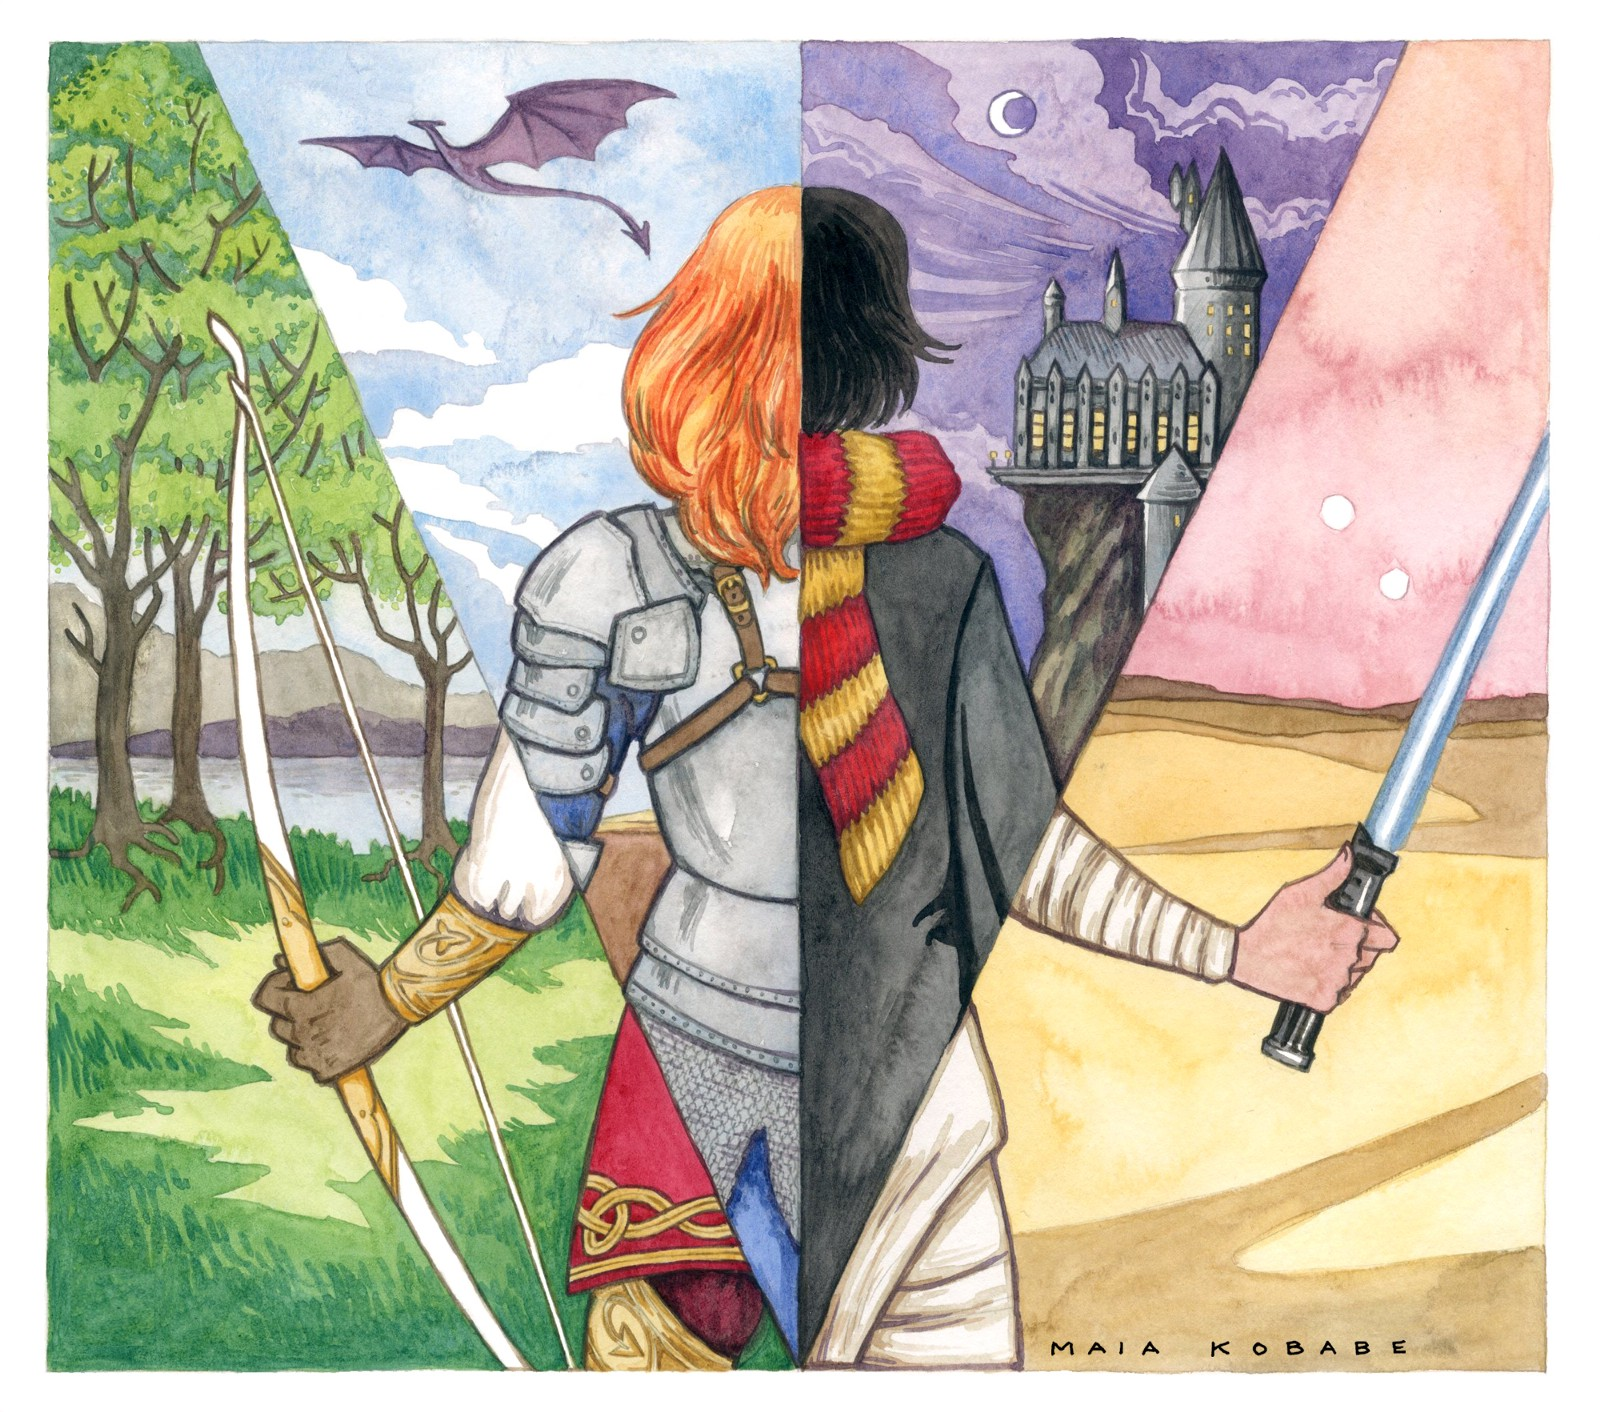 An image of a young woman, seen from behind, as if through a prism, showing multiple versions: as a Celtic warrior holding a bow, in a forest, a knight in armor with a dragon flying overhead, a Hogwarts student looking at the castle, and a Jedi in the desert wielding a lightsaber.  Image credit:   Maia Kobabe